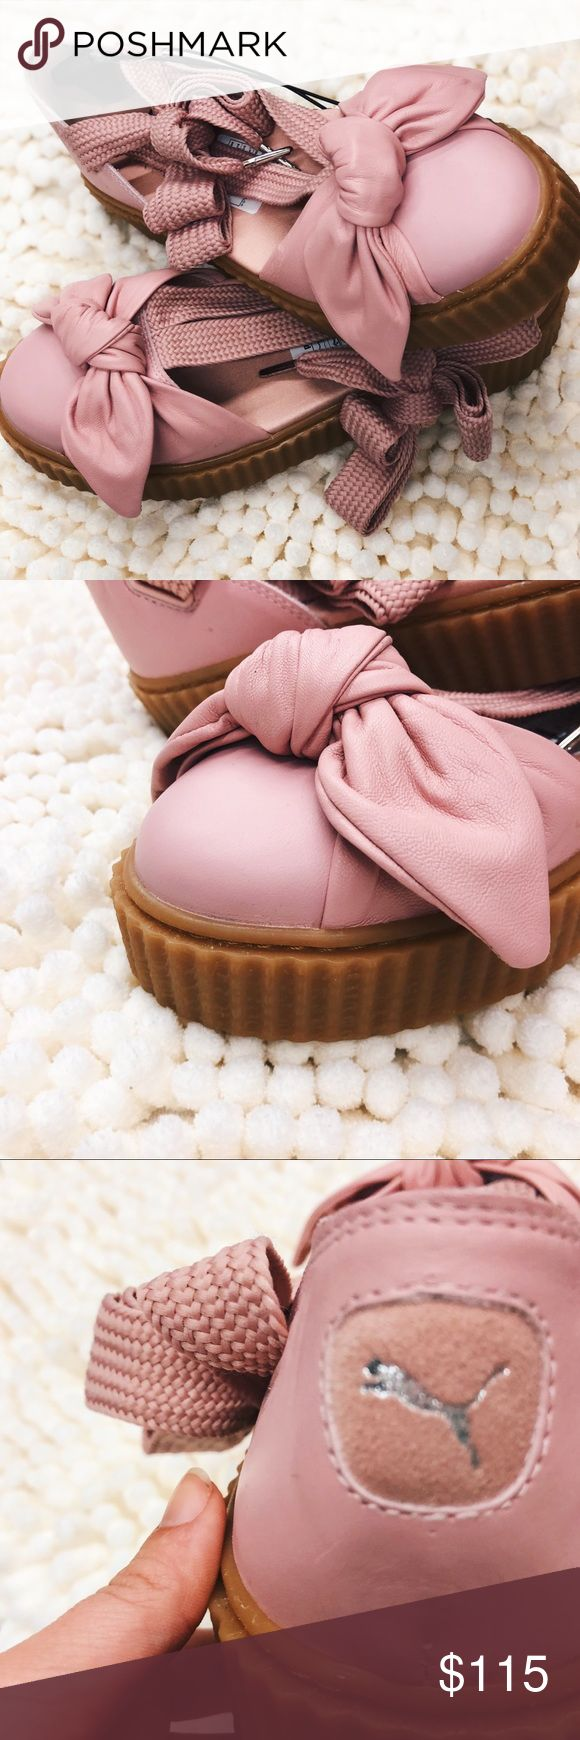 Fenty by Rihanna Bow Creeper Sandal Adorable Pink Rihanna Puma sandal. Laces up and pink with gum bottom. Size 8.5. Comment questions!❤️ brand new without tags. Puma Shoes Sandals